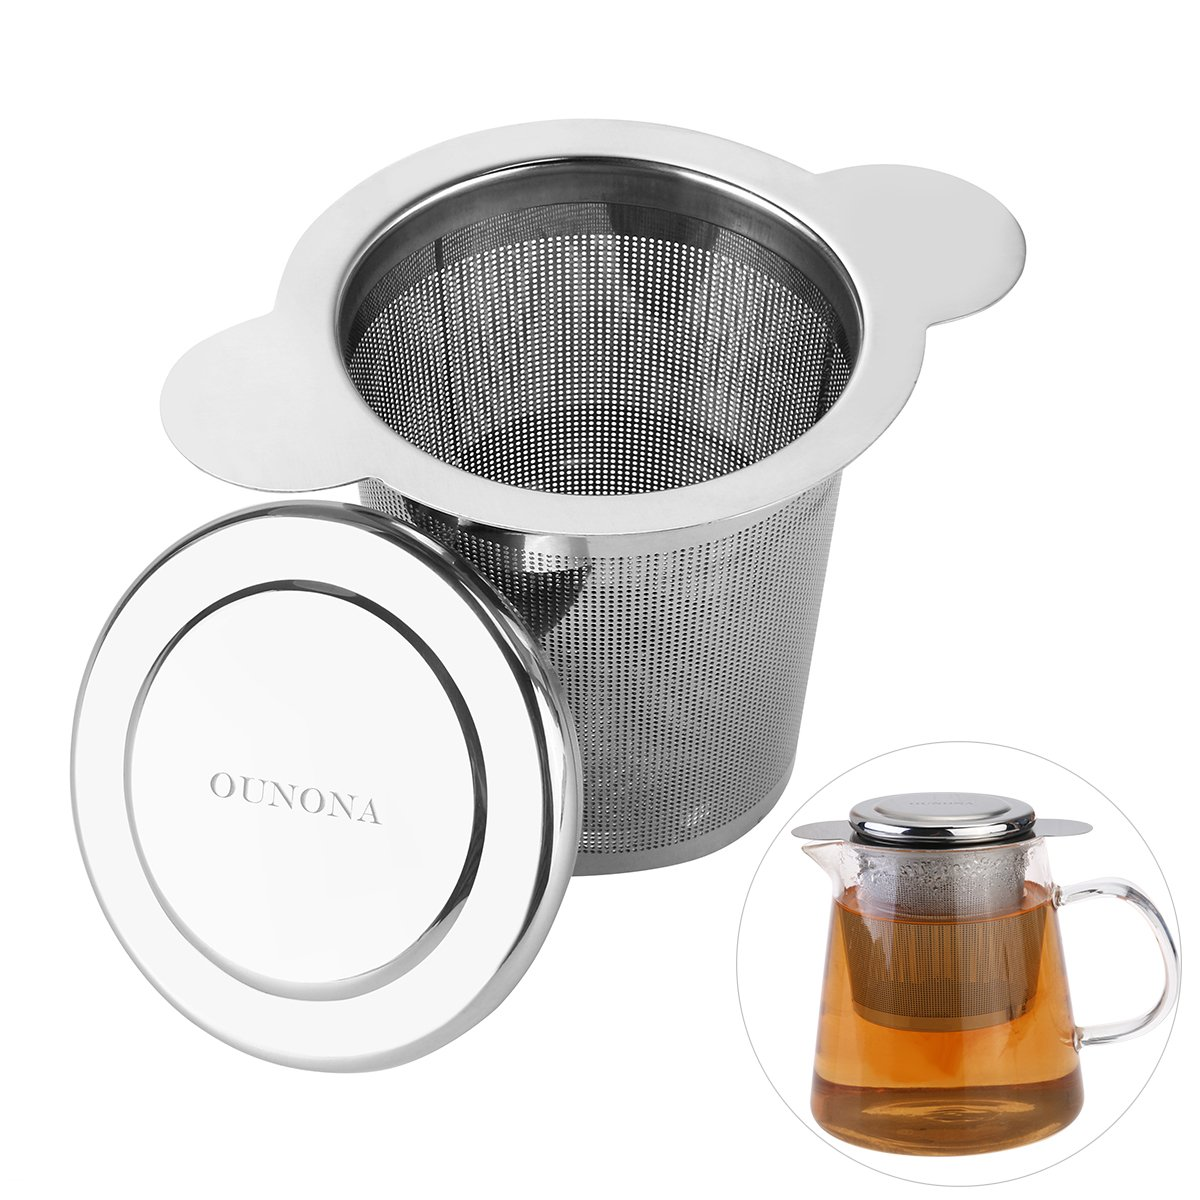 OUNONA TeaStrainer Tea Infuser 304 Stainless Steel with Lid for Loose Leaf Grain Tea Cups, Mugs, and Pots FEMIHGFJGUGD177